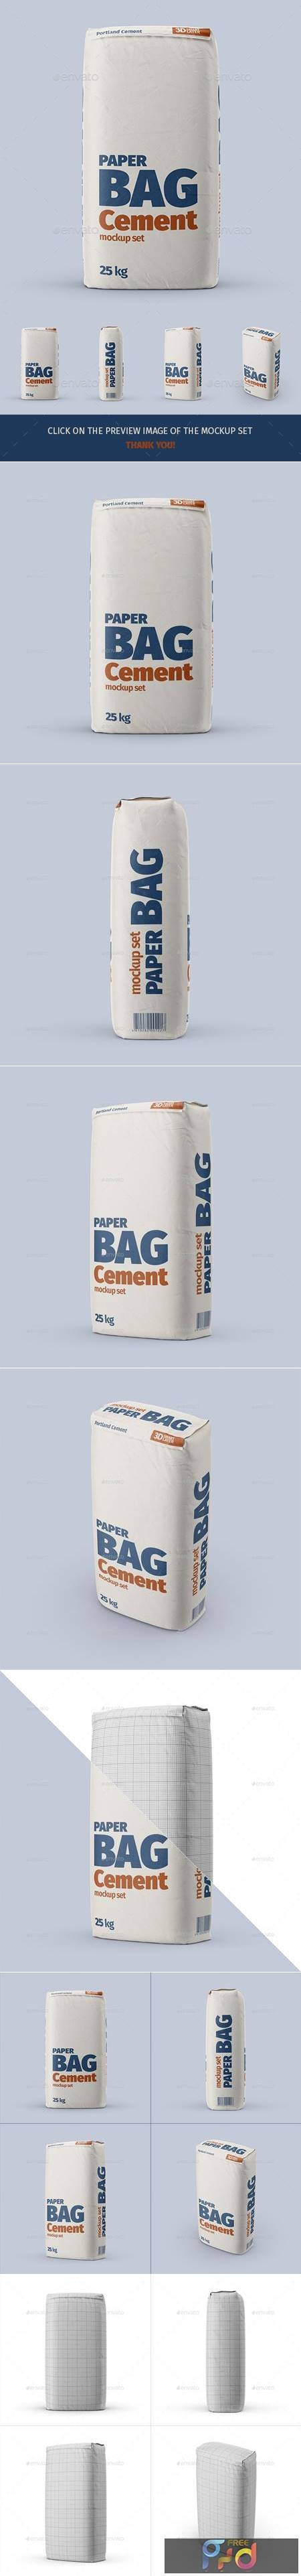 Paper Cement Bag Mockup Set - 29431930 1